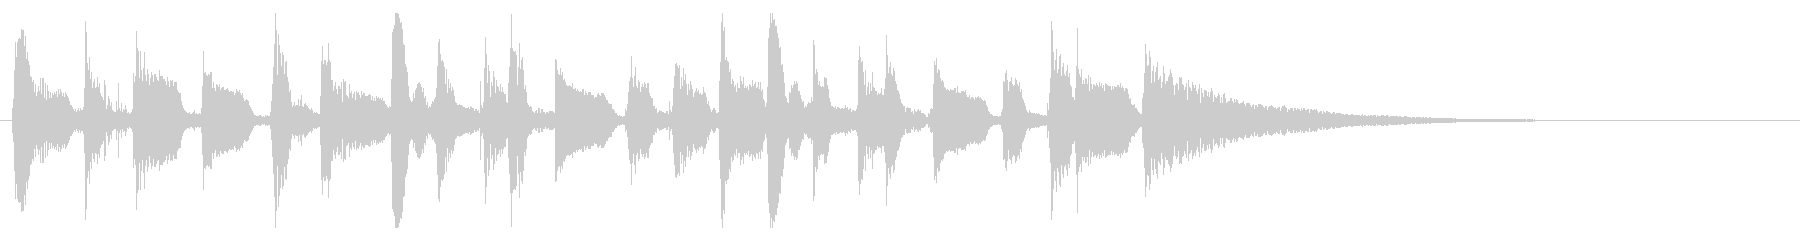 Whistling Jingle CM Company VP Refreshing and energetic (short)'s unreproduced waveform